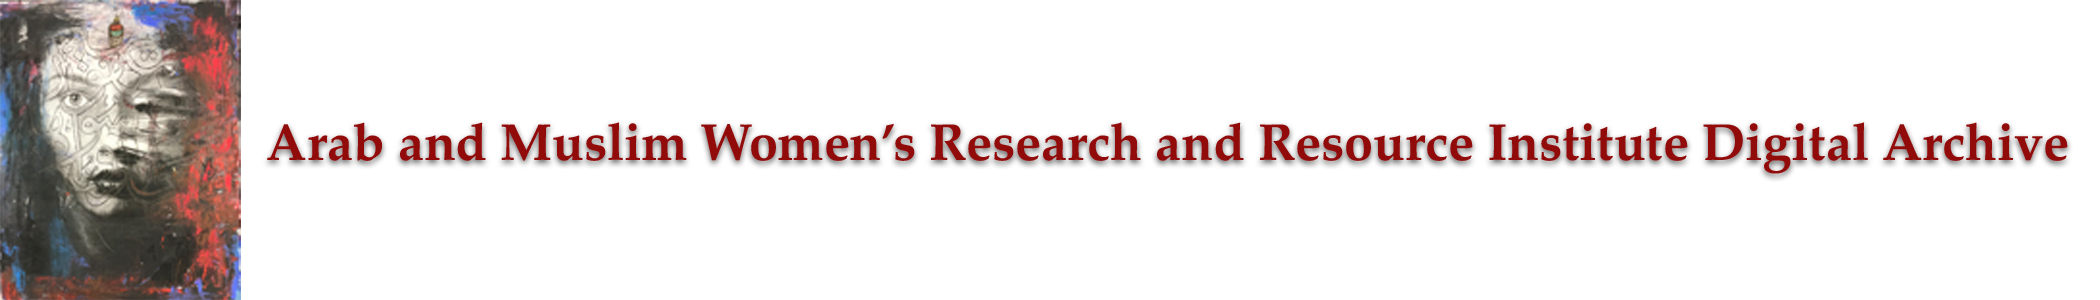 Arab and Muslim Women's Research and Resource Institute